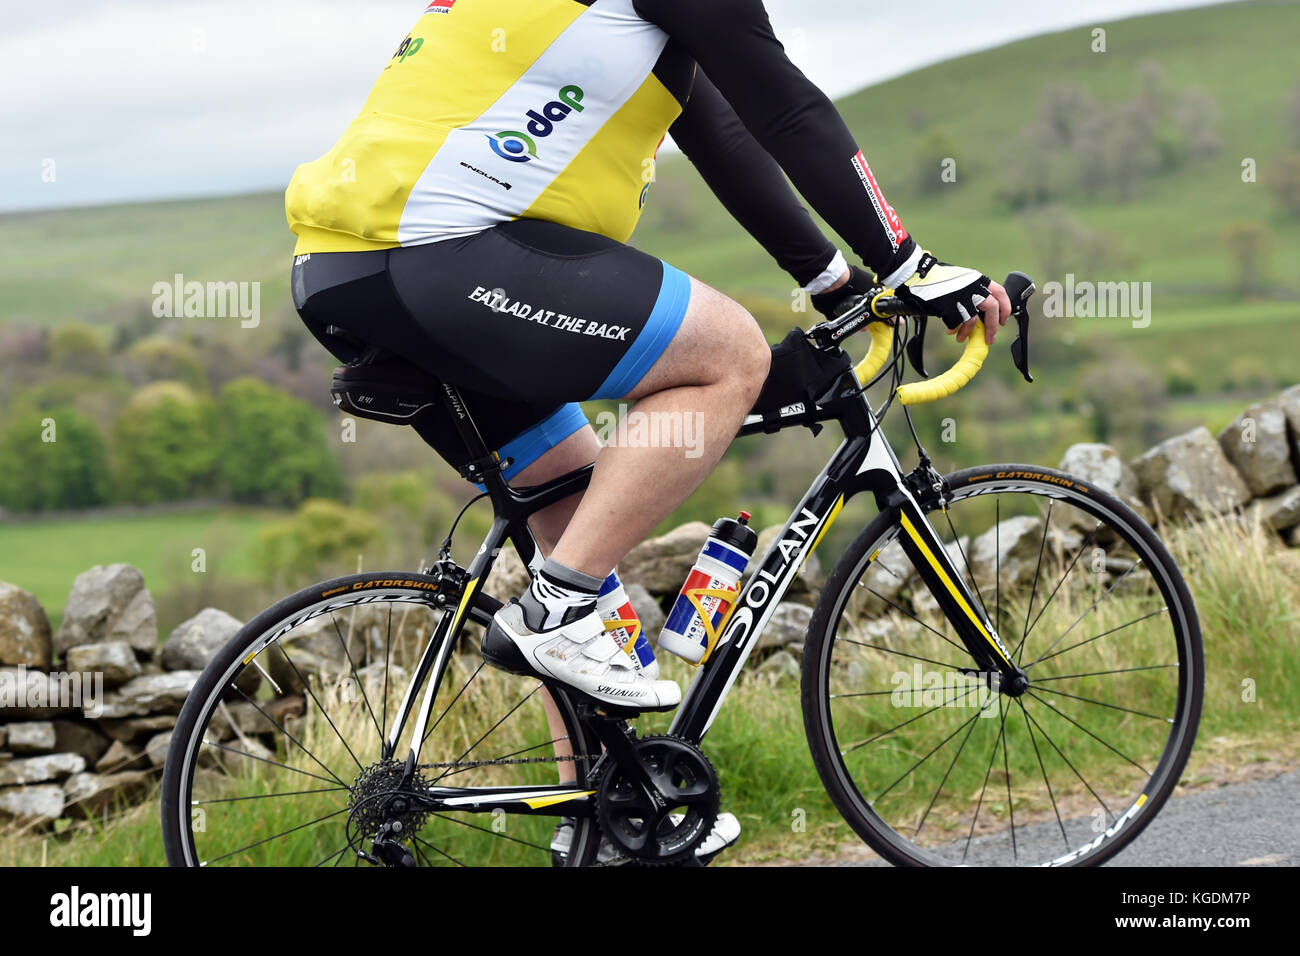 Overweight cyclist cycling up hill in Yorkshire UK - Stock Image